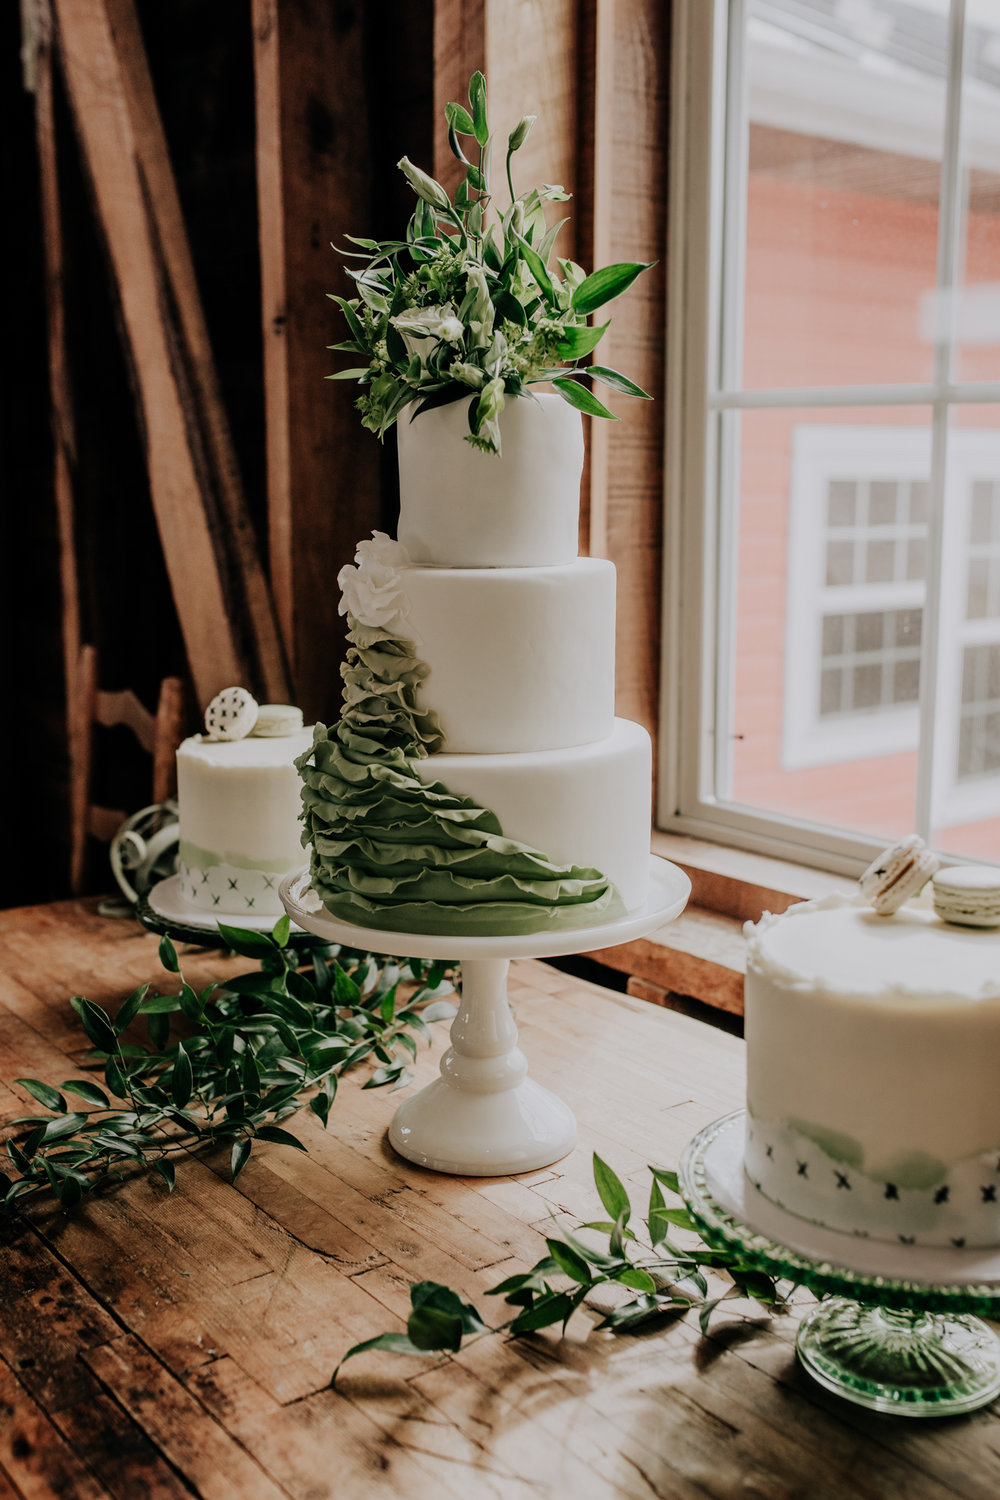 Yield Bakehouse - Wedding Cake - Green - Macaroon - Greenery - jewel Tone Wedding - Ambre Cake - Hove Photography